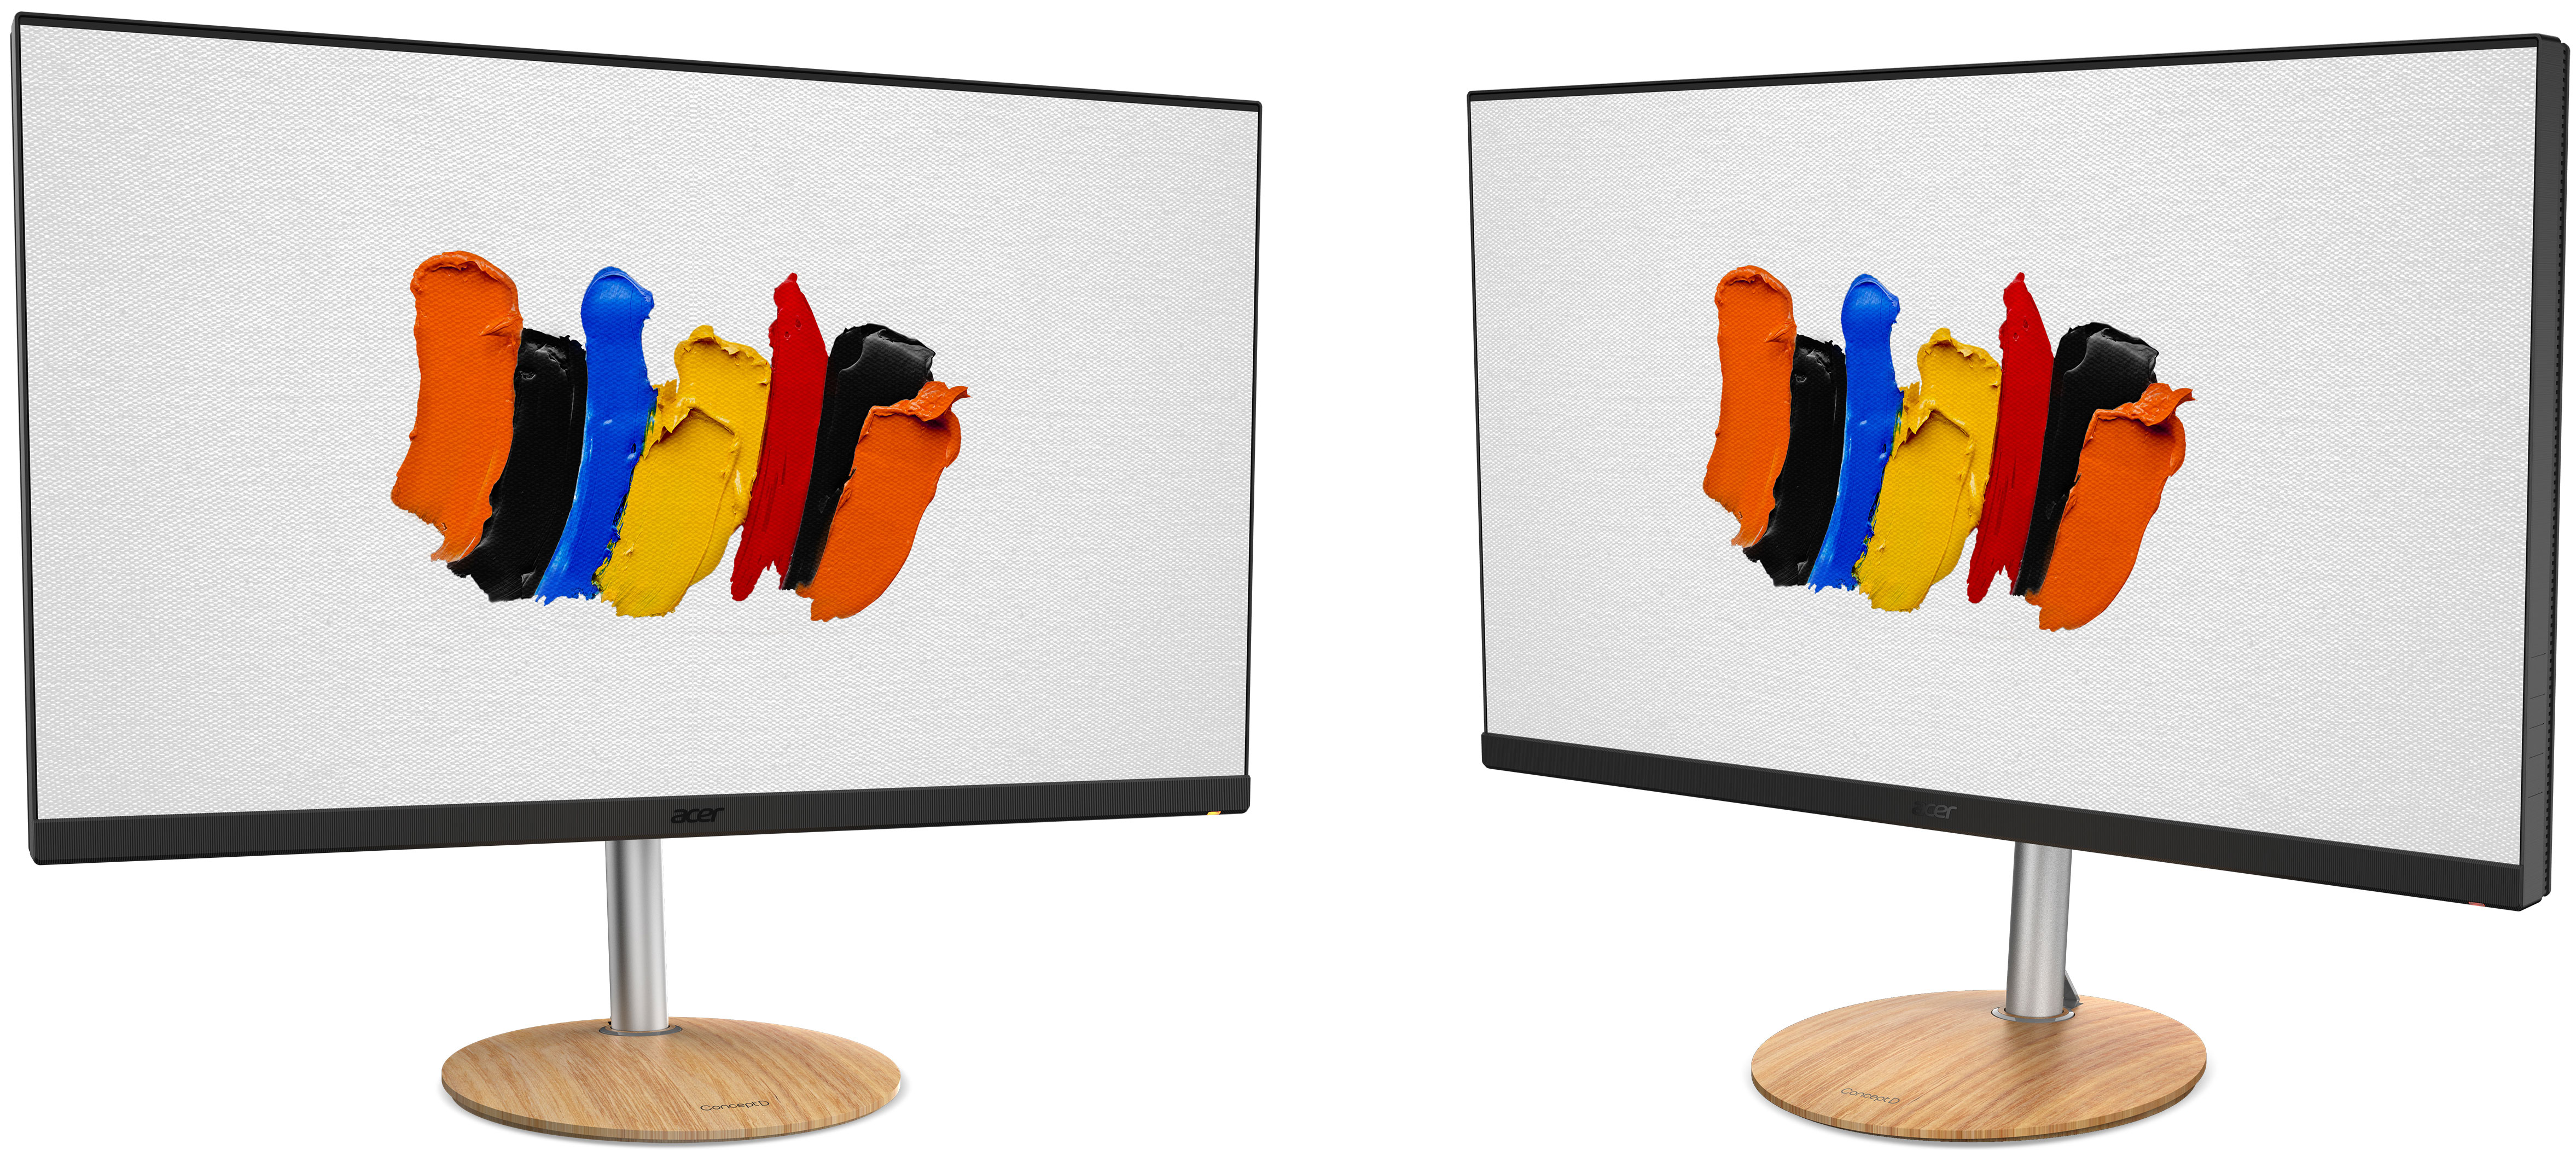 Acer Joins Mini LED Monitor Club with Professional-Focused